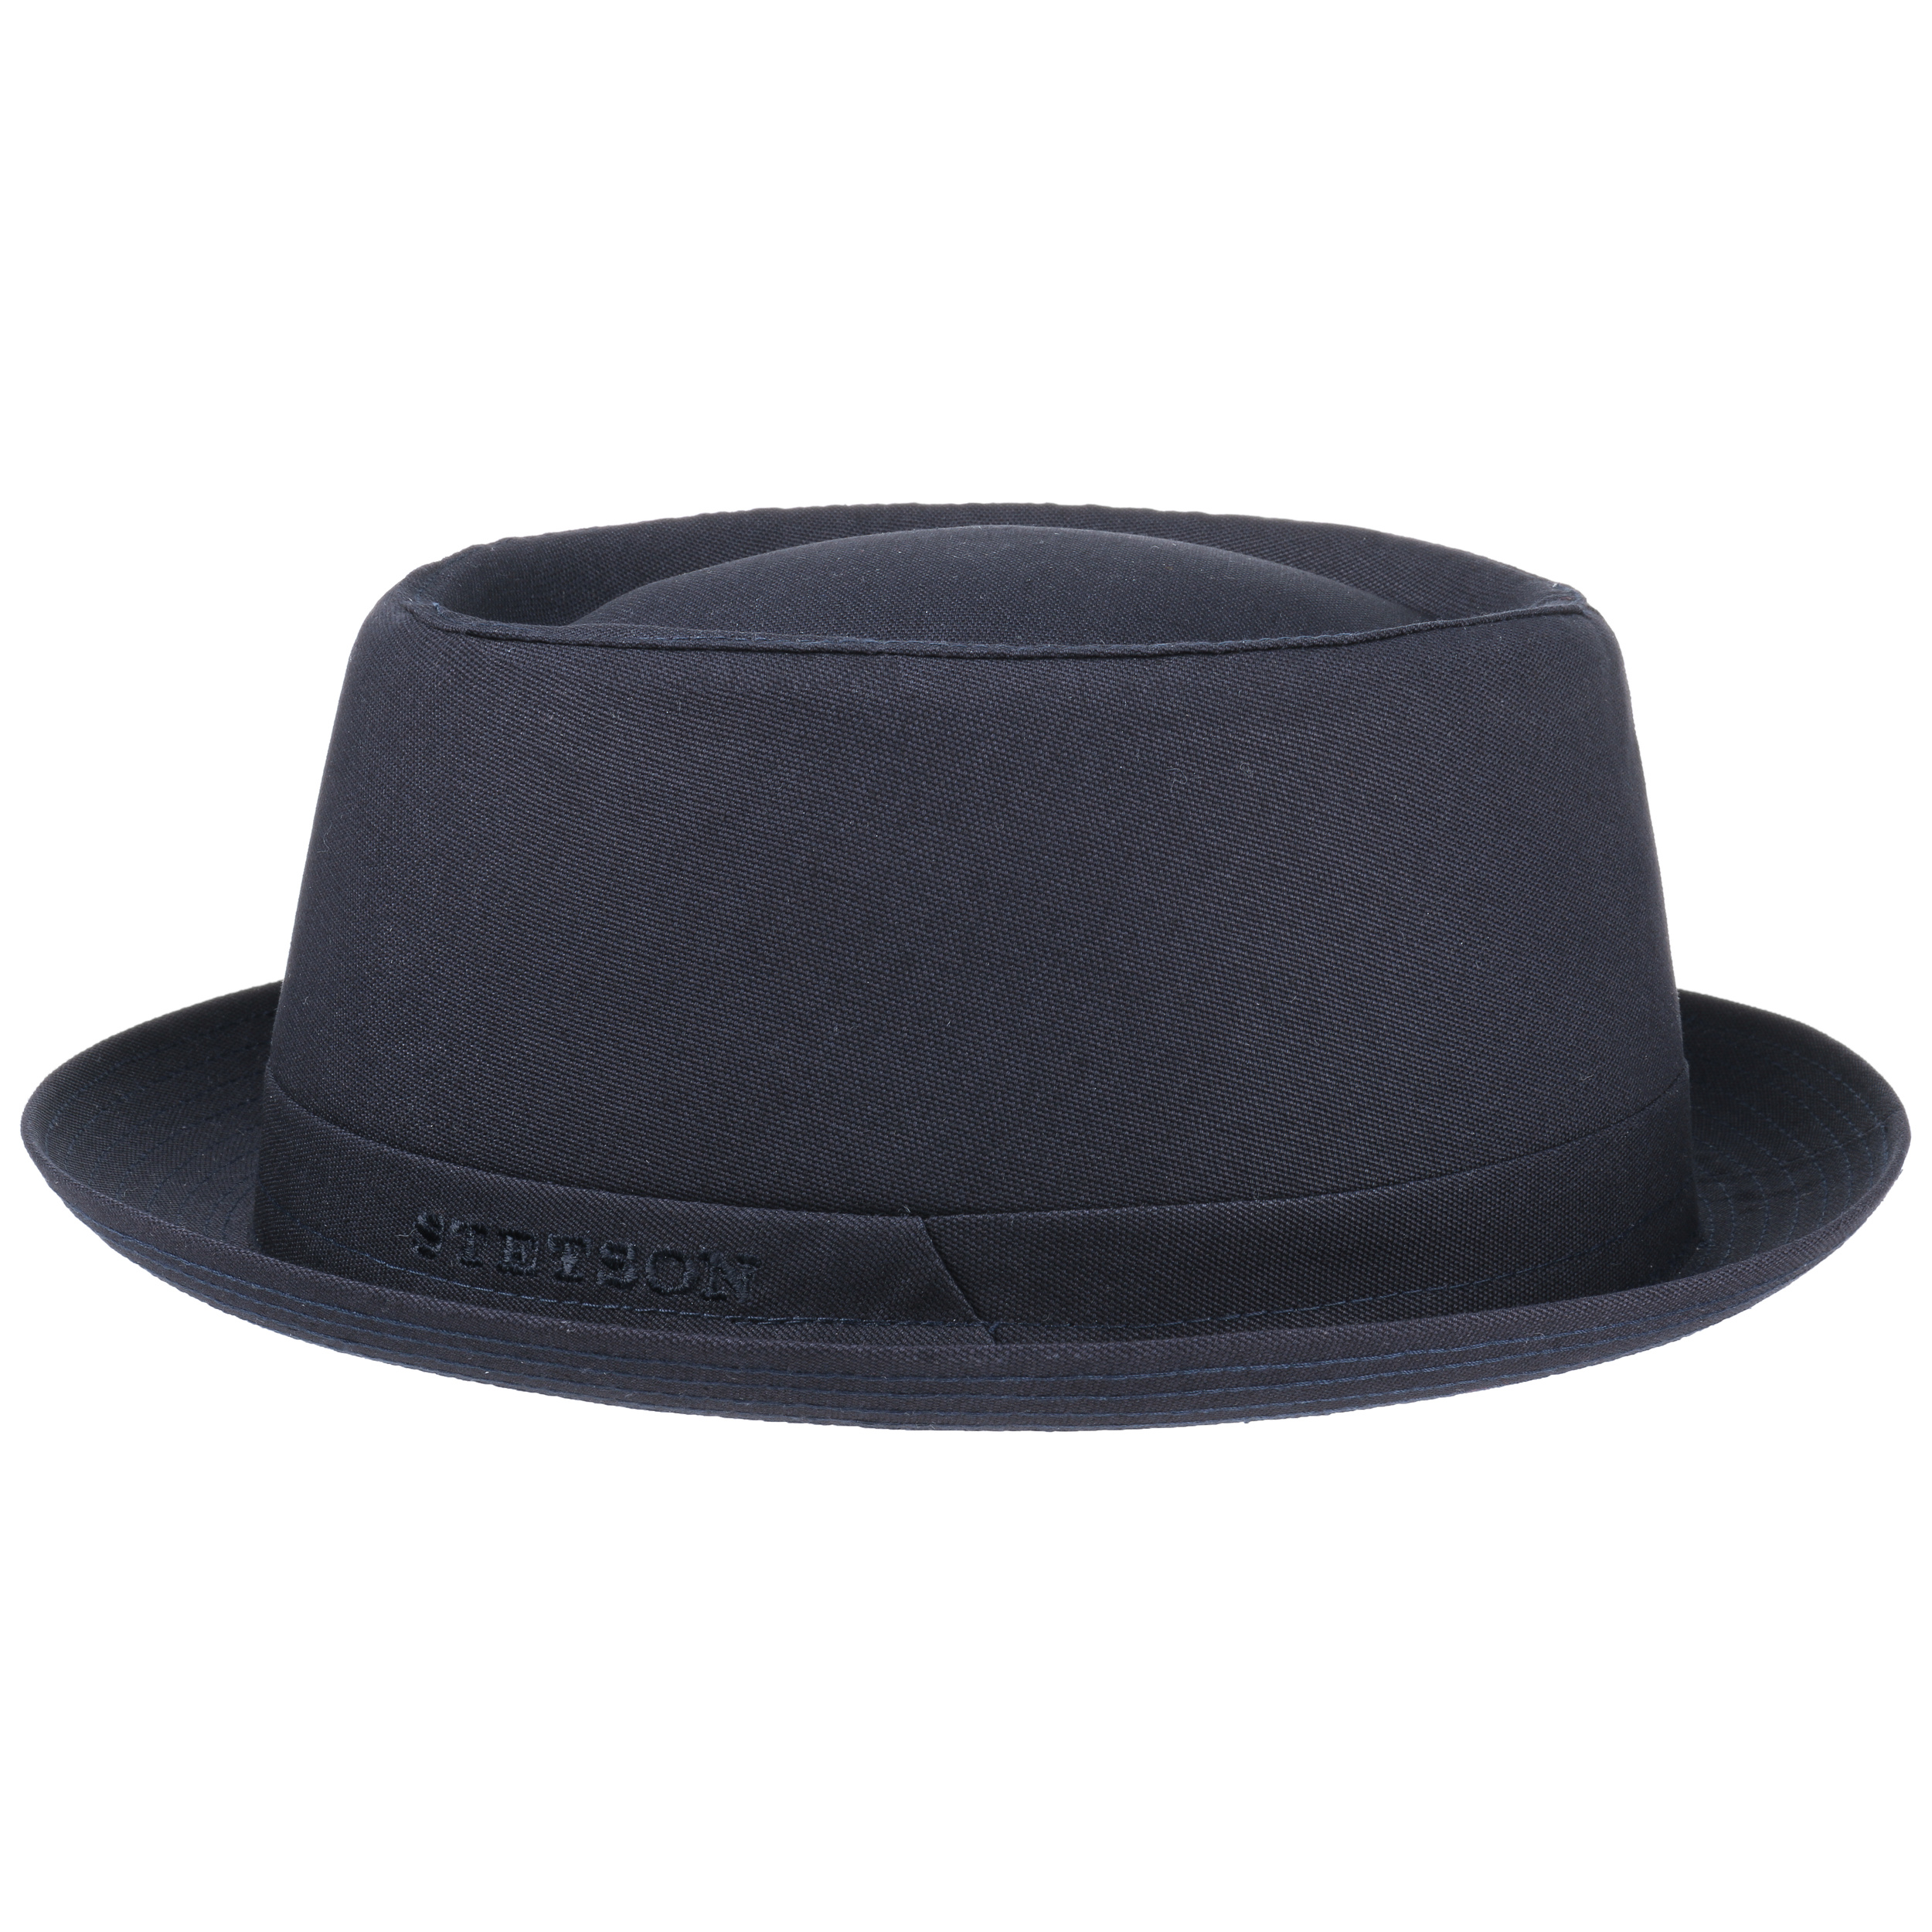 Athens Cotton Pork Pie Hat. by Stetson 47889c8dd6d